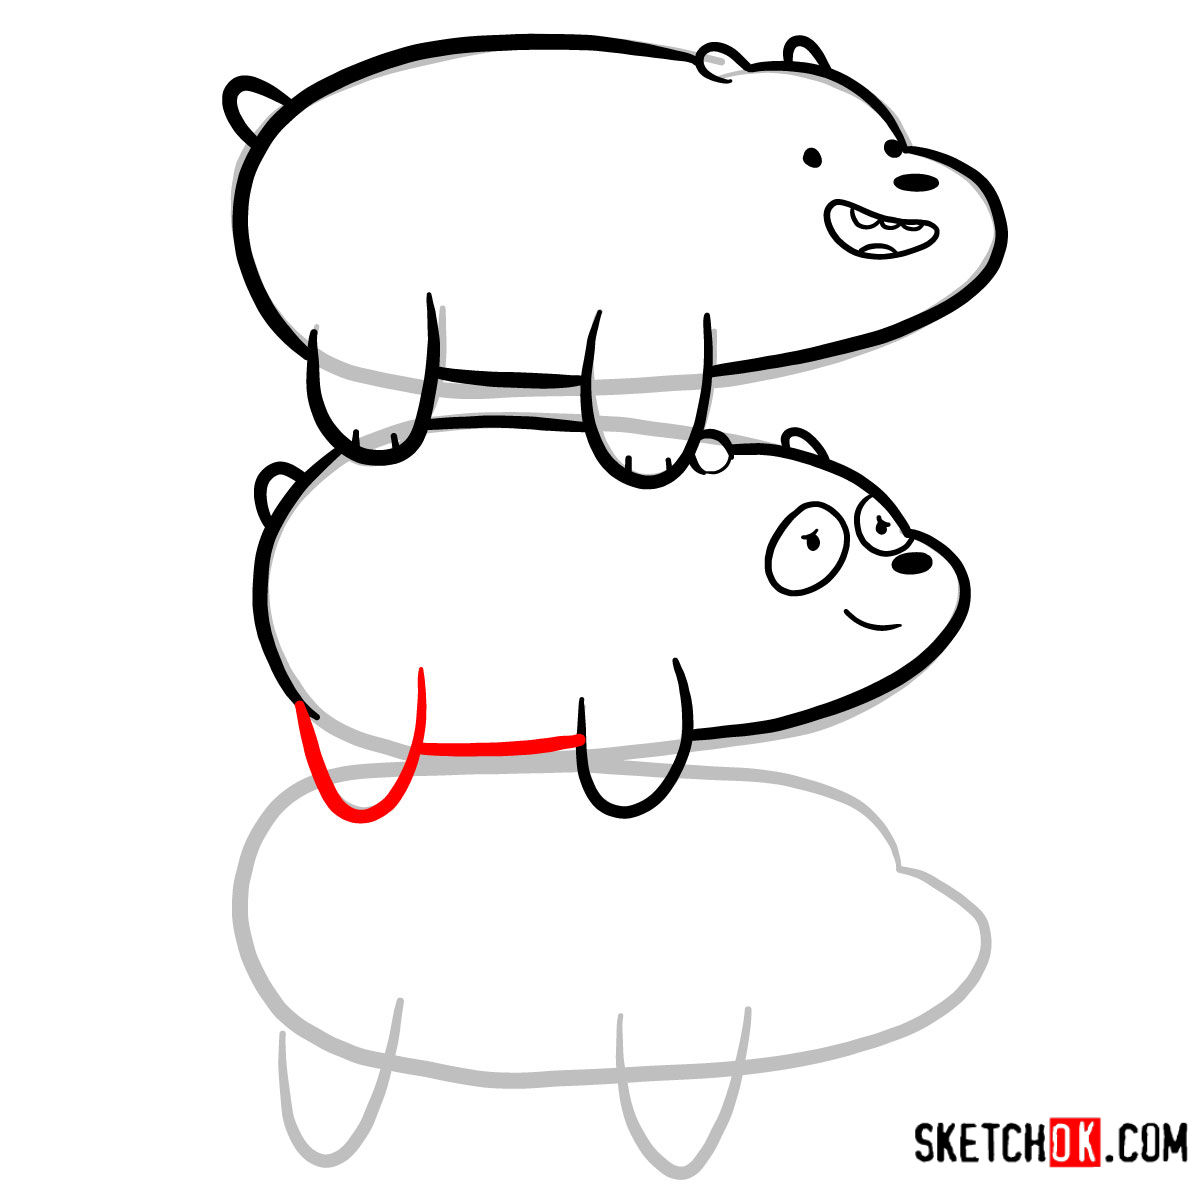 How to draw the bears standing on each others back | We Bare Bears - step 09